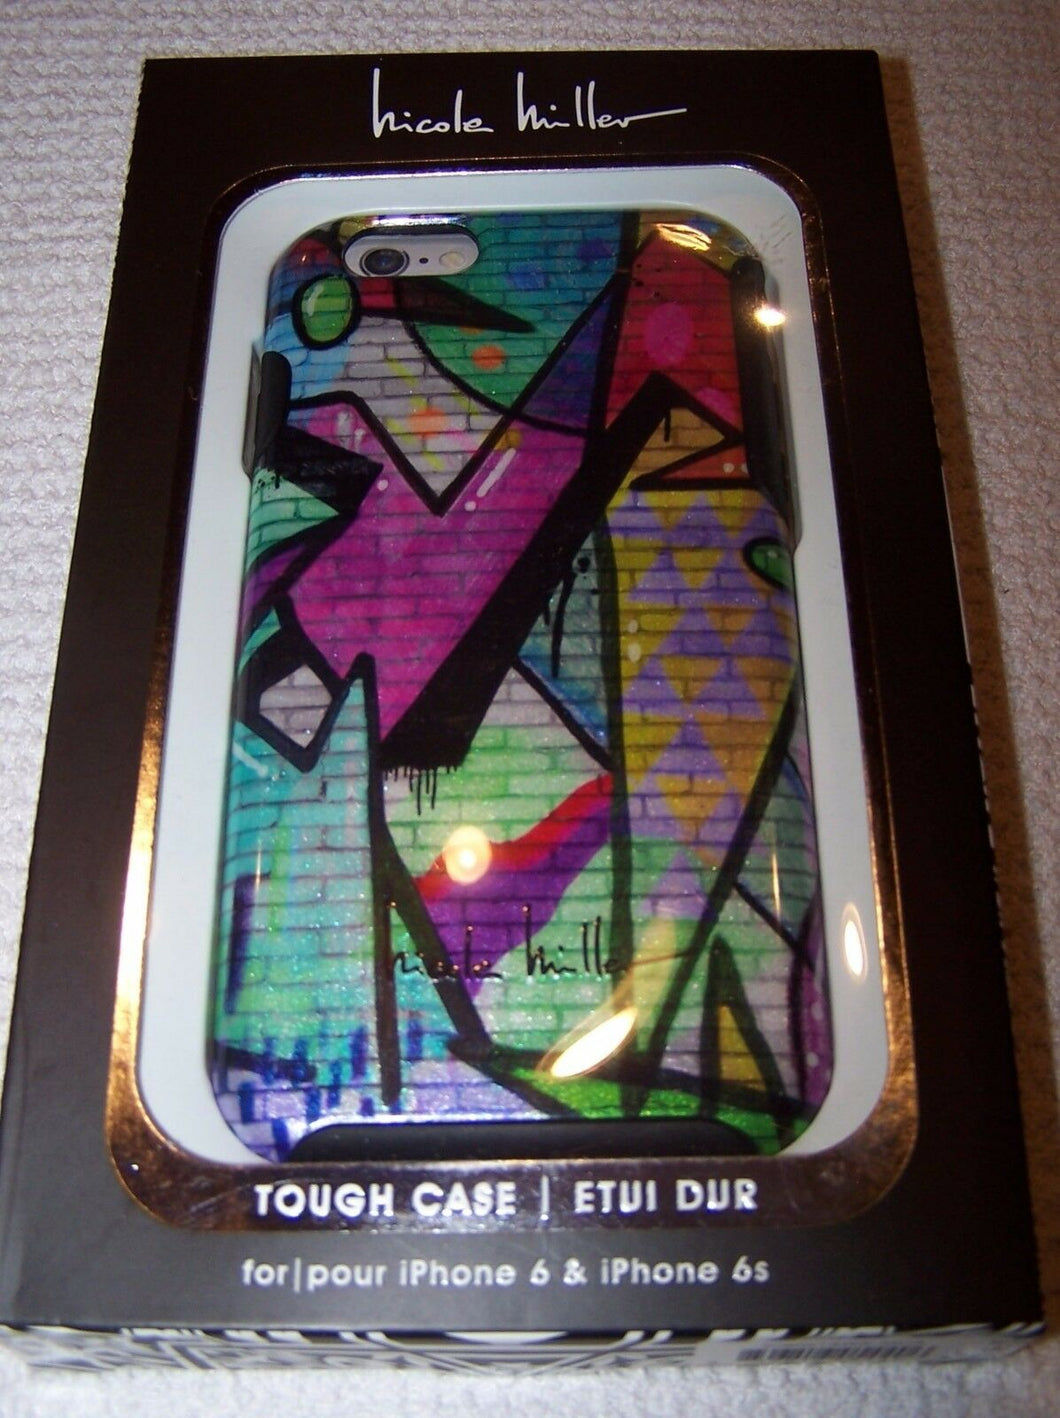 shimer finish coque iphone 6 nicole miller